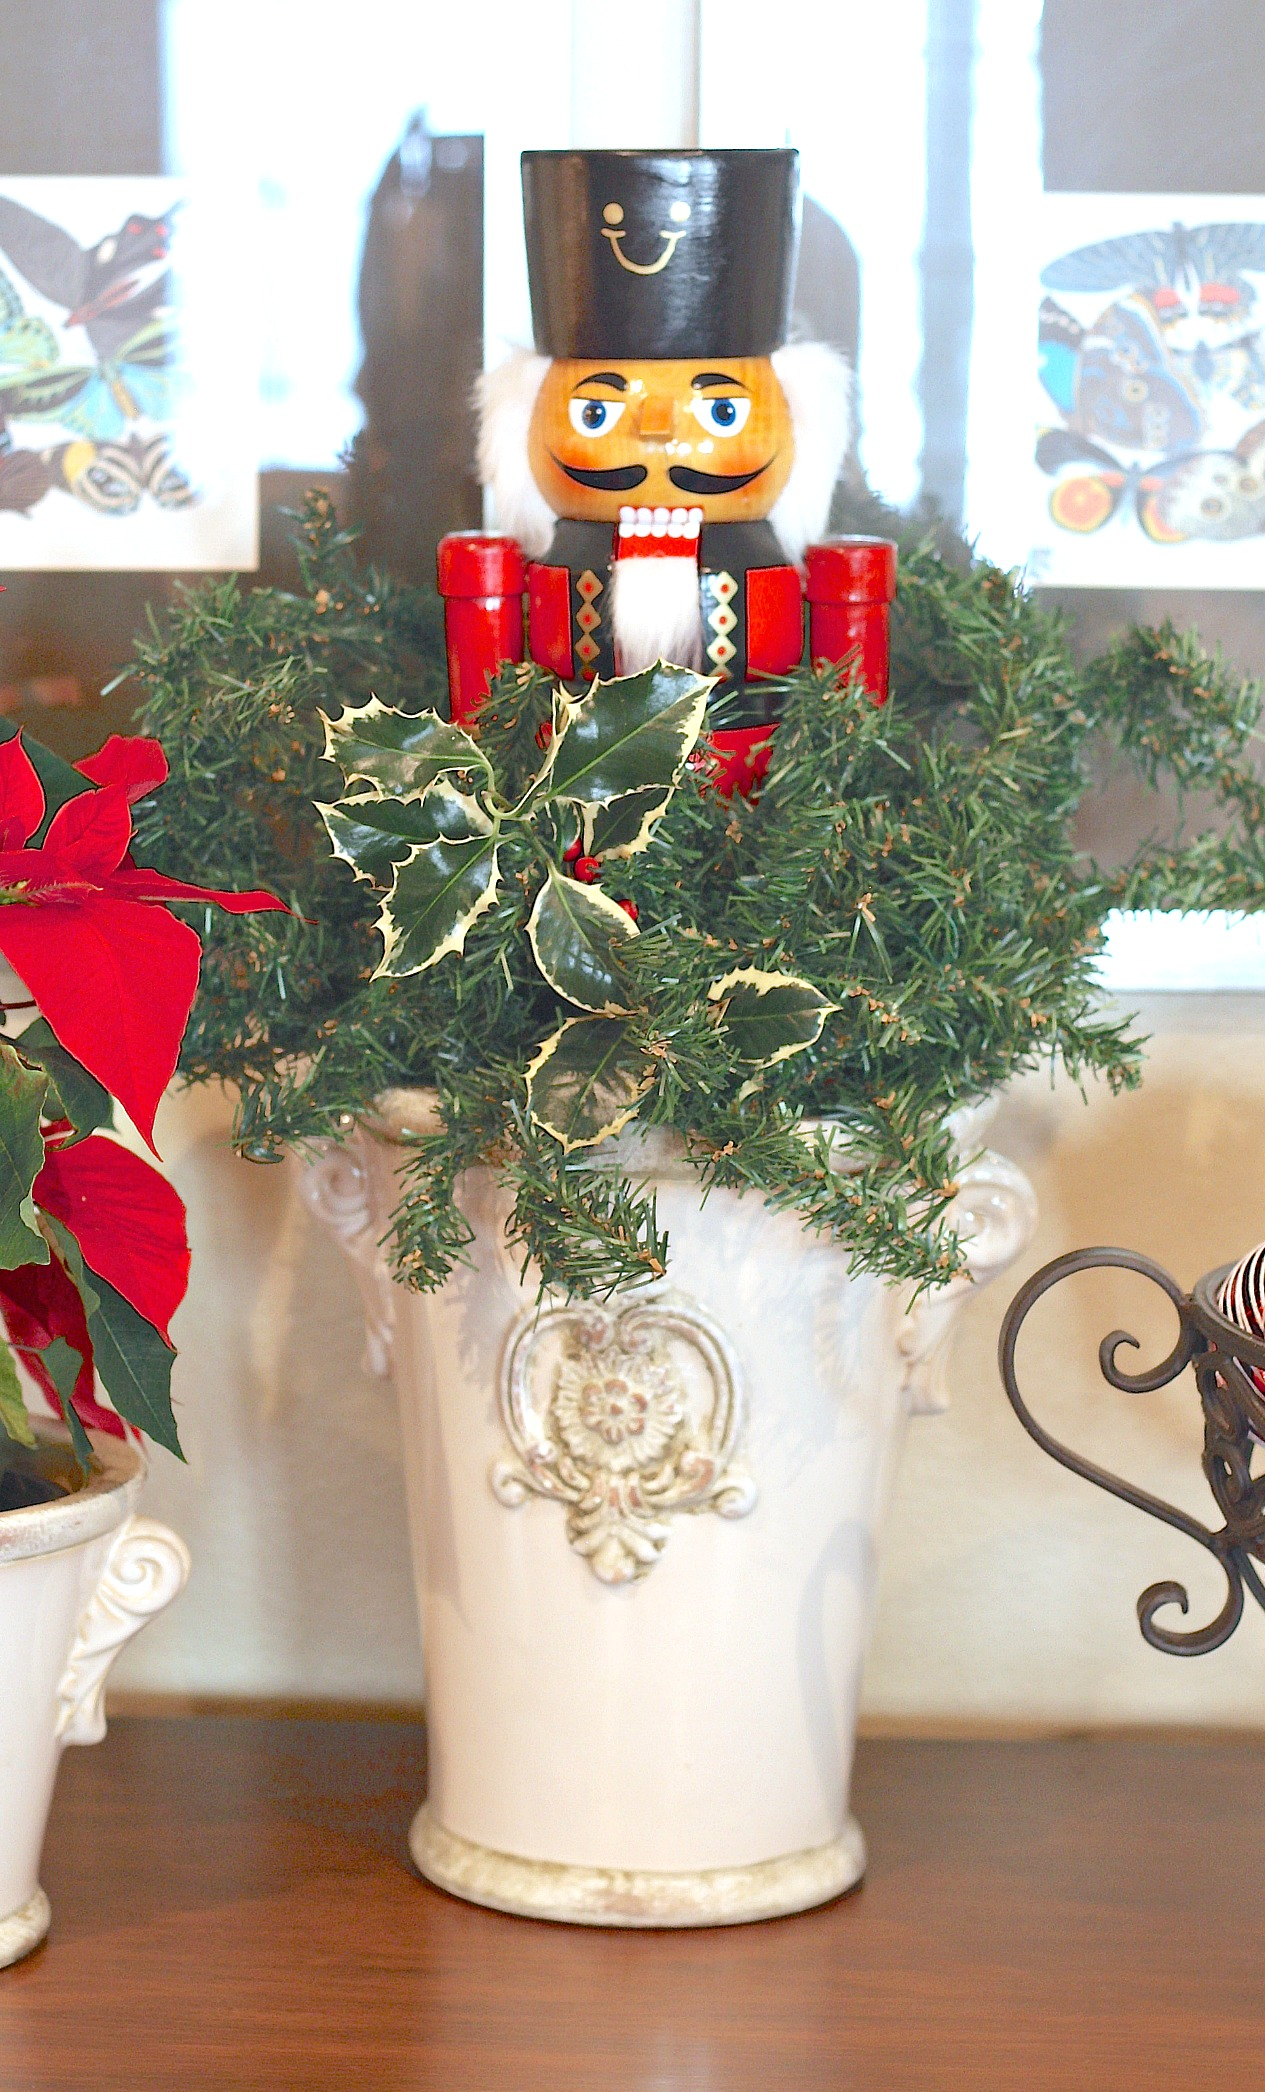 How to make a nutcracker arrangement.